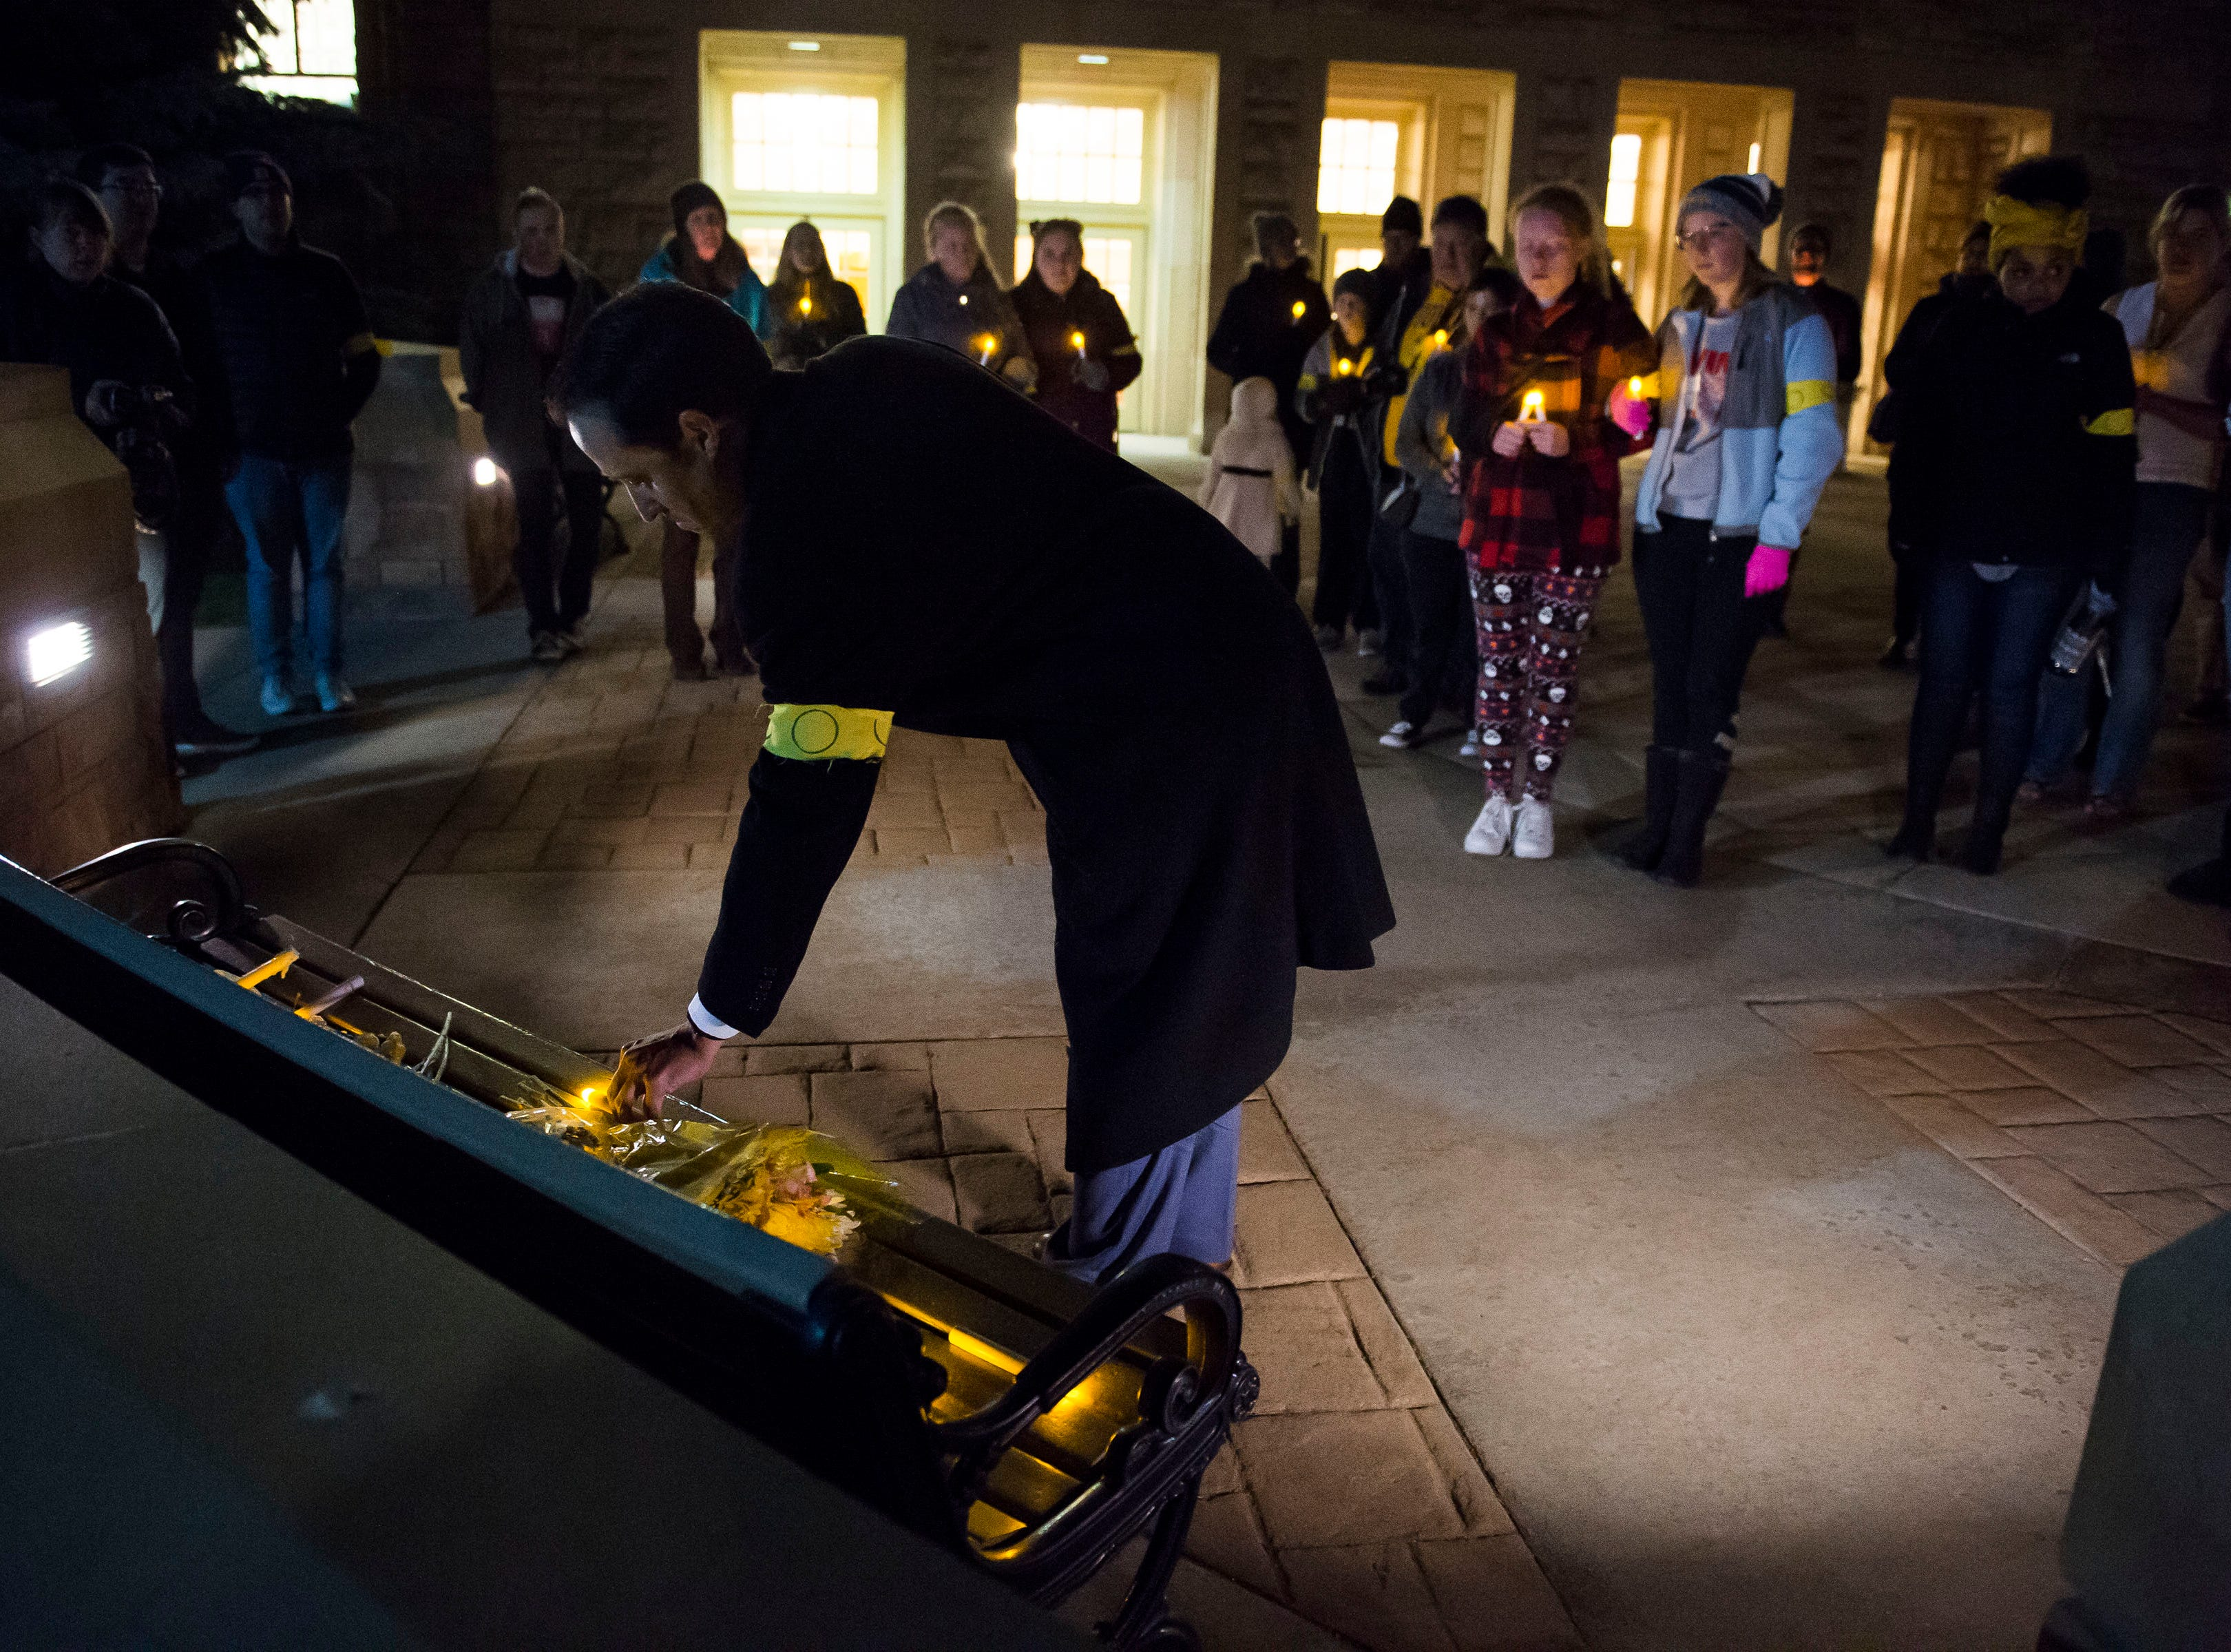 University of Wyoming chief of staff Dan Maxey sets his flameless candle down on a bench dedicated to Matthew Shepard after a candlelight vigil on the 20th anniversary of Shepard's death on Friday, Oct. 12, 2018, at Prexy's Pasture on the University of Wyoming campus in Laramie, Wyo.